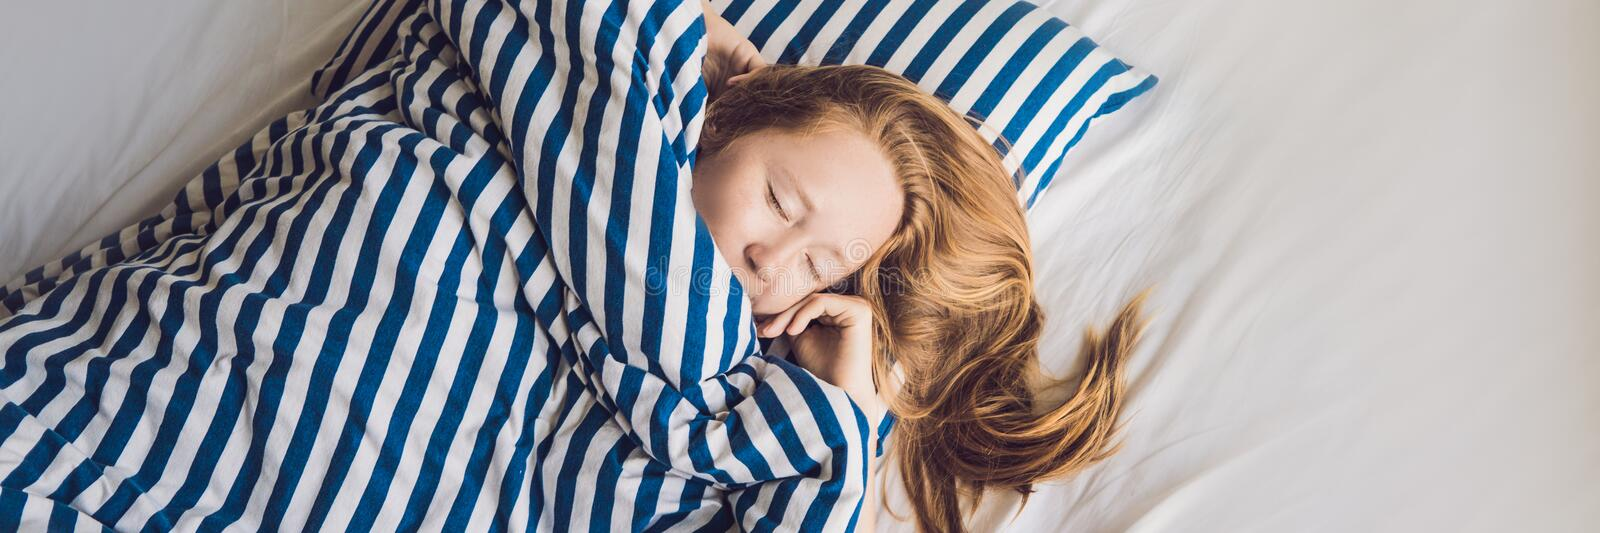 Young beautiful woman sleeping in her bed and relaxing in the morning BANNER, long format. Young beautiful woman sleeping in her bed and relaxing in the morning royalty free stock photos